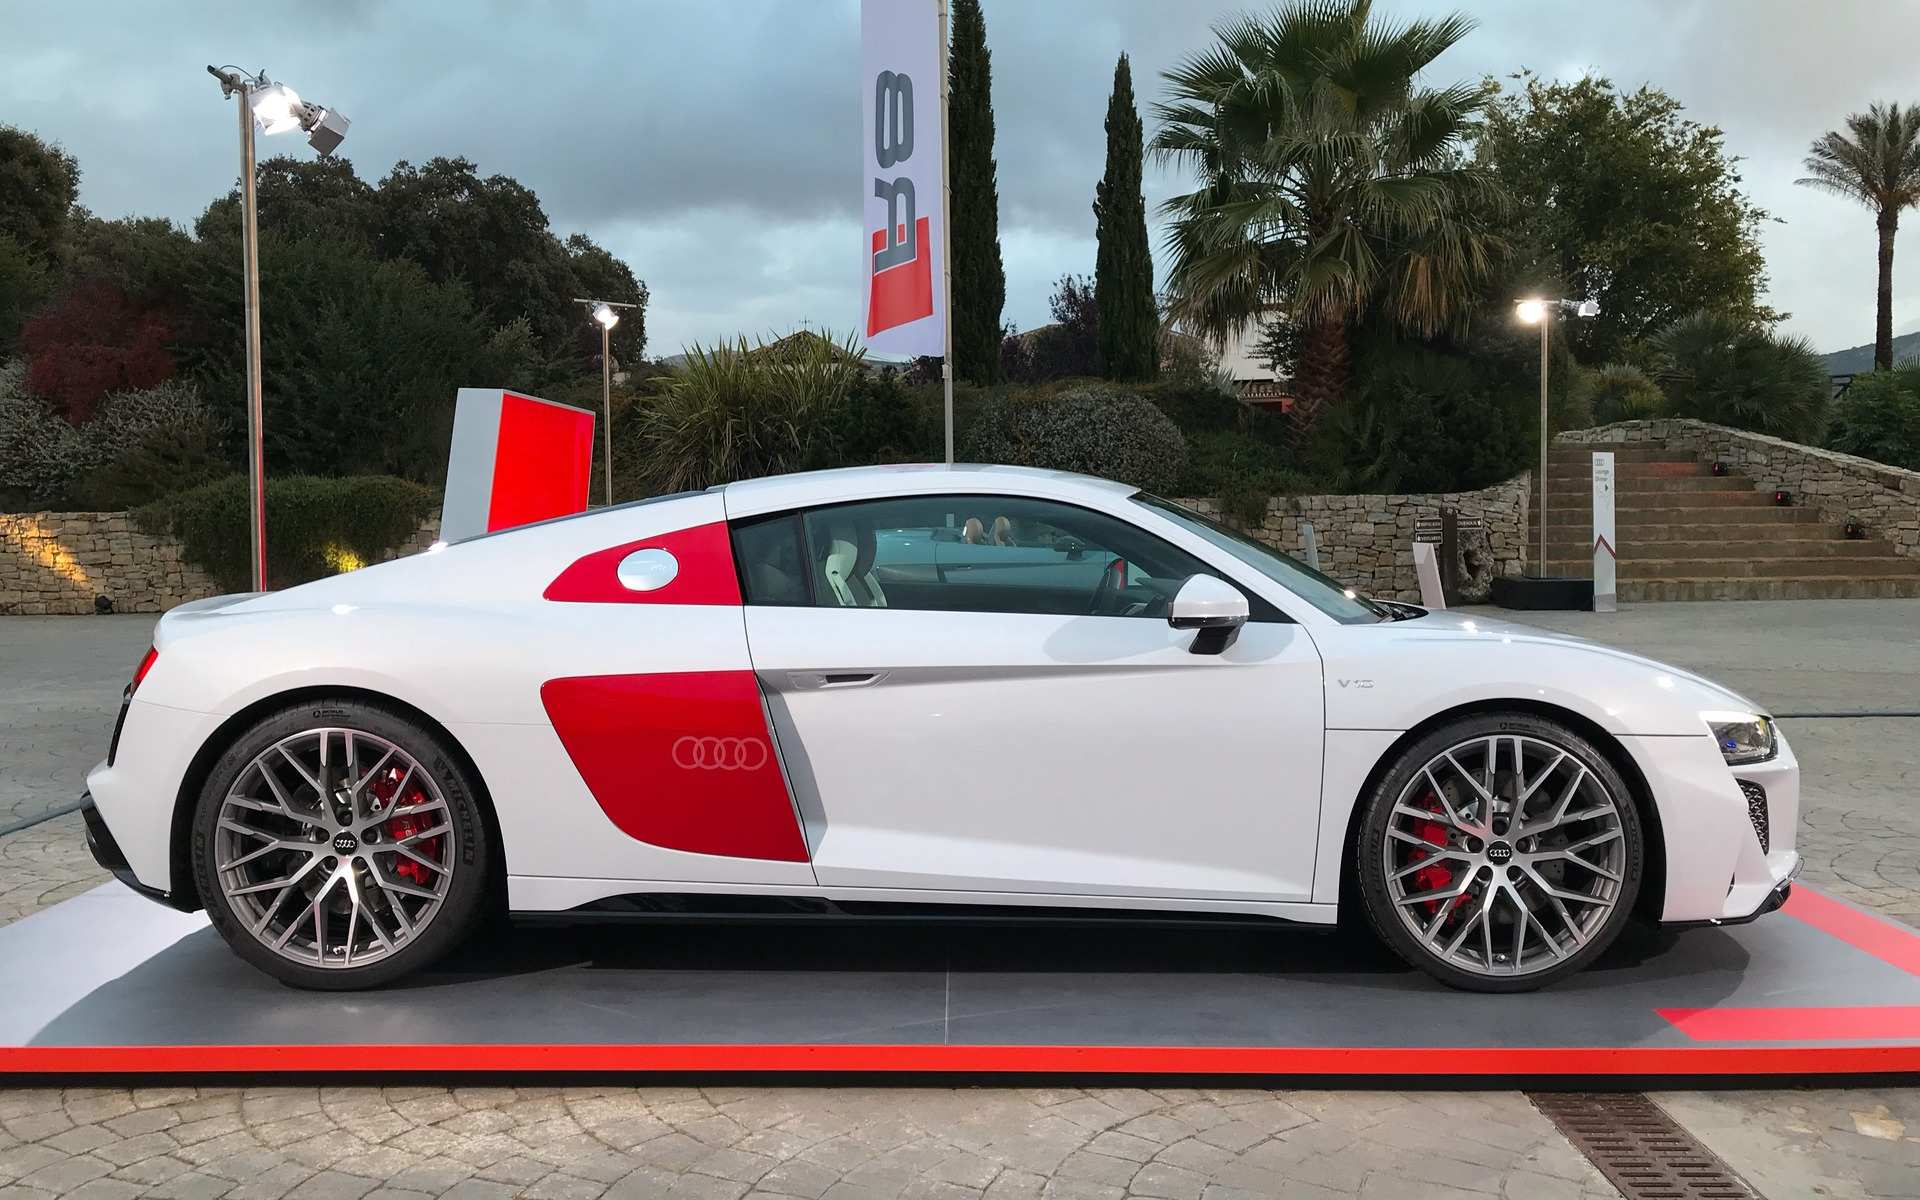 69 All New 2020 Audi R8 V10 Performance New Review with 2020 Audi R8 V10 Performance